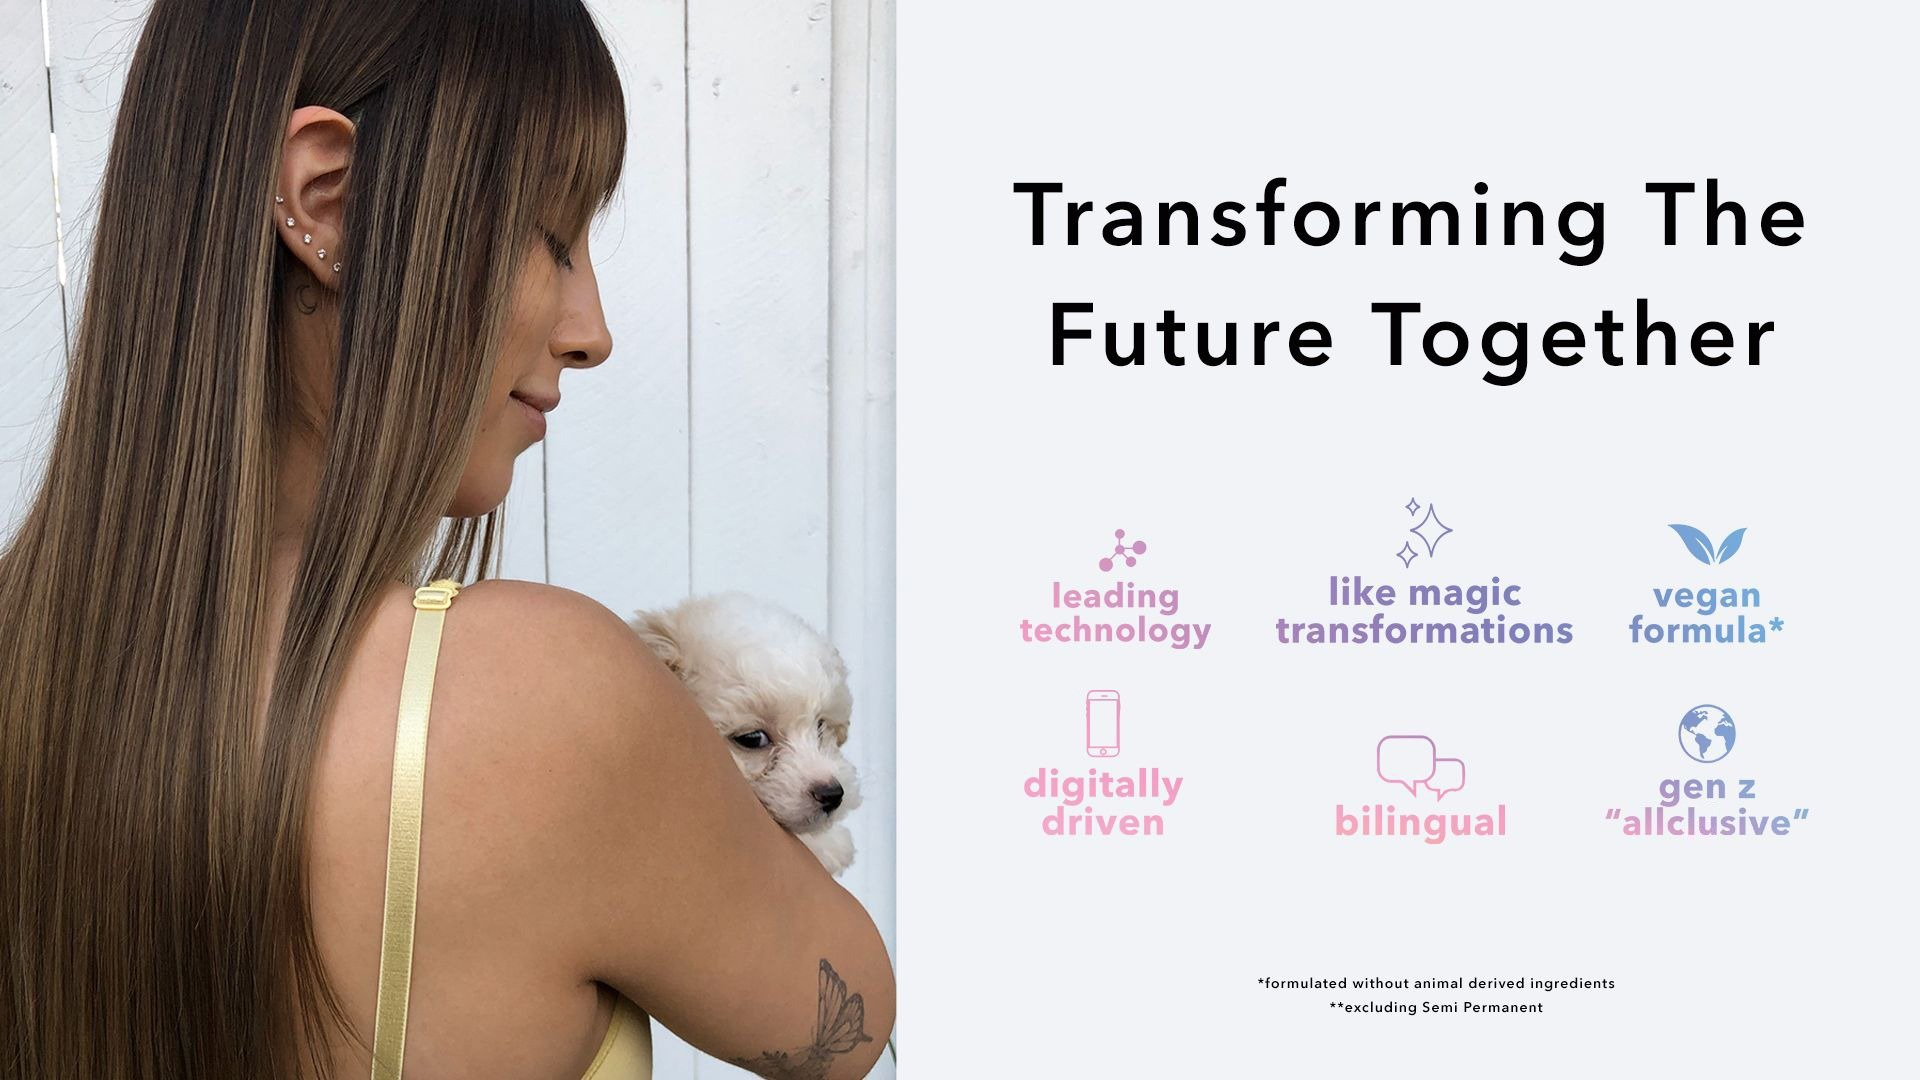 Transforming the future together. leading technology, like magic transformations, vegan formula* digitally driven, bilingual, gen z allclusive. *formulated without animal-derived ingredients ** excluding Semi Permanent